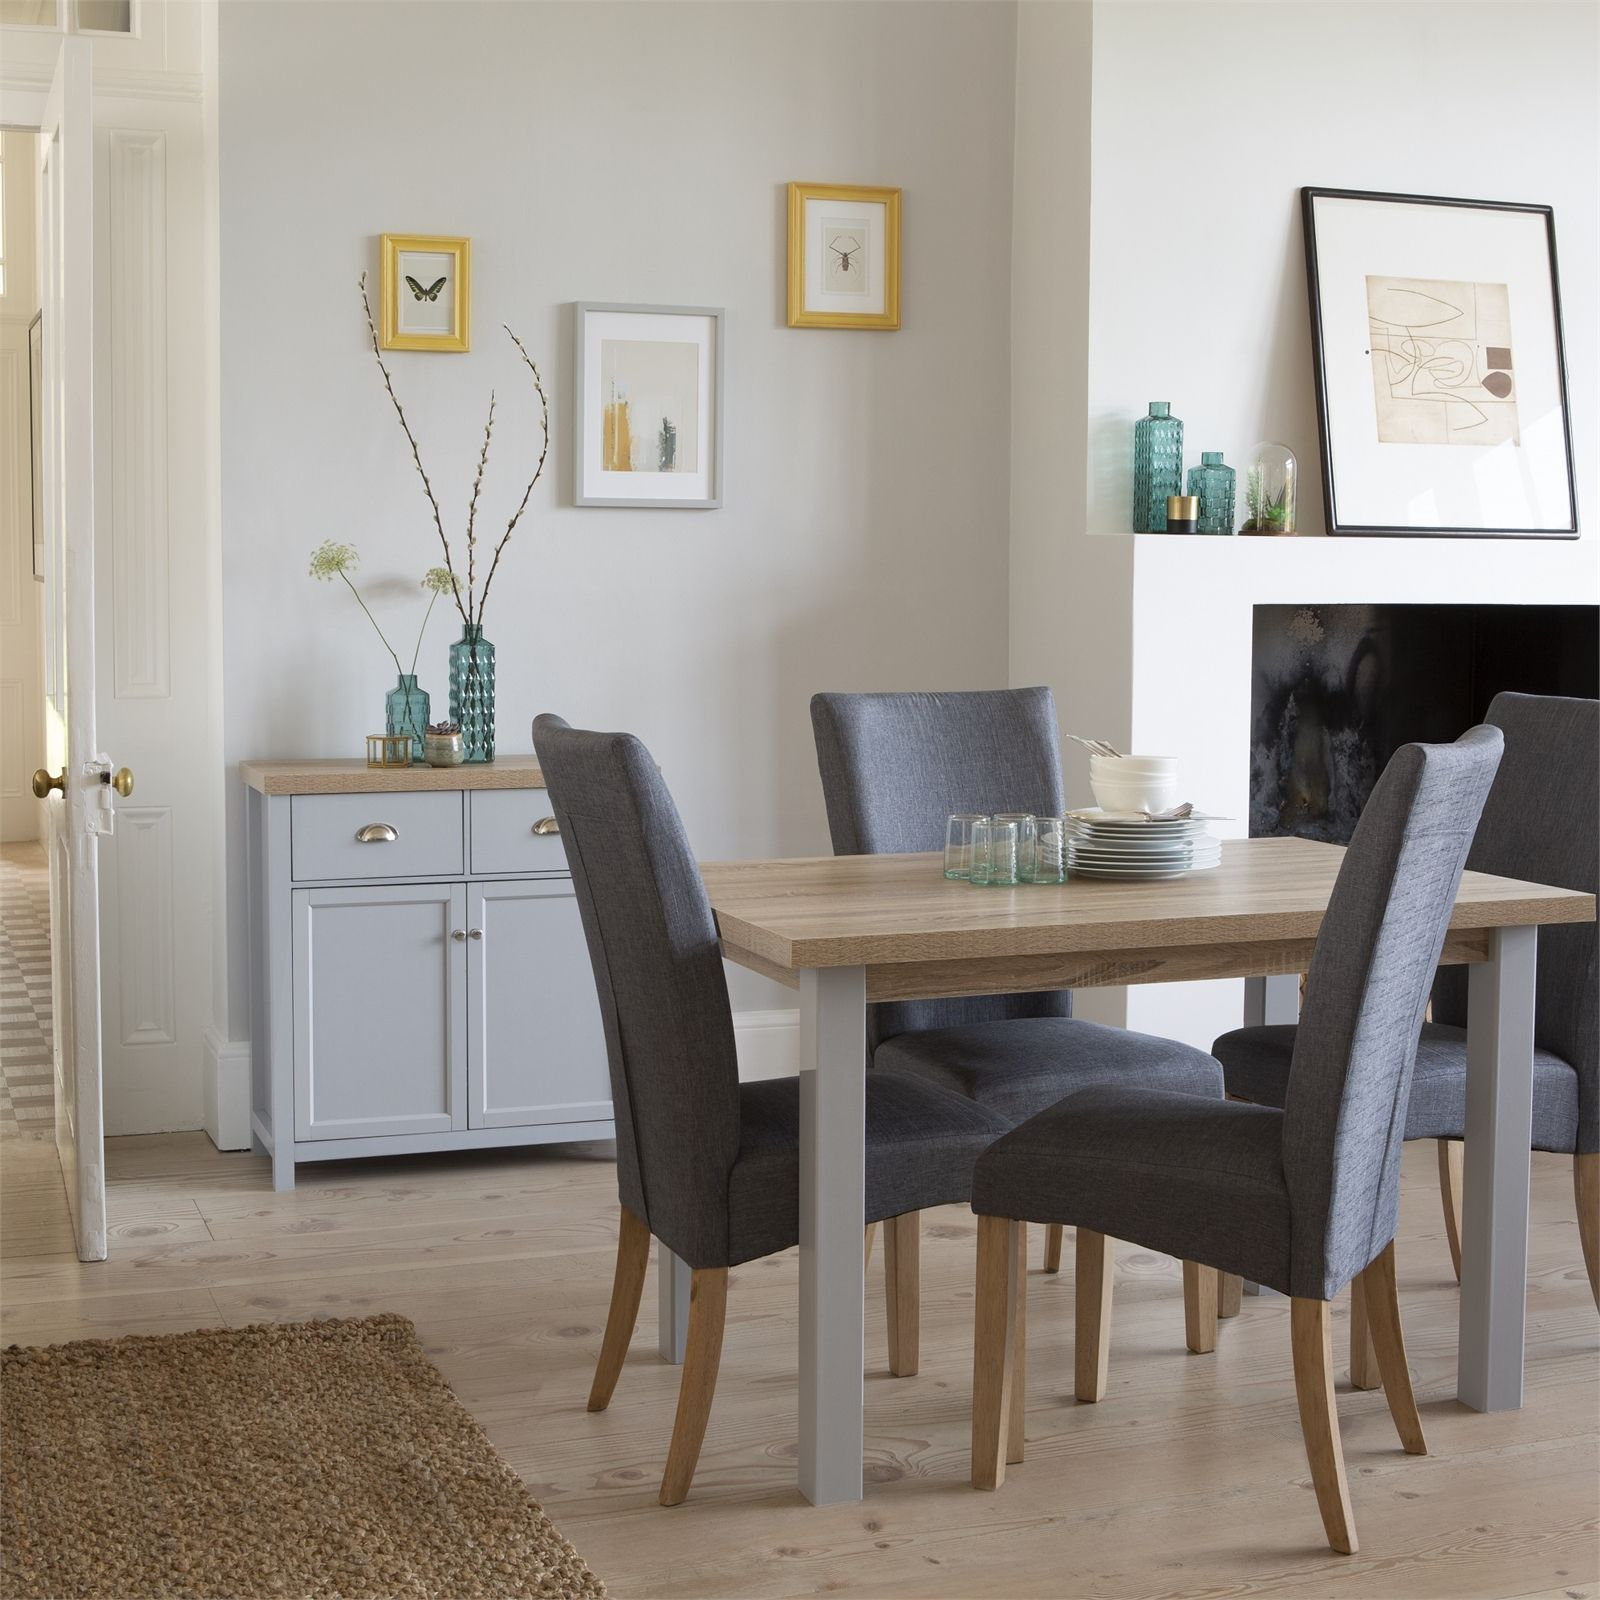 Fabulous Harlow Dining Table And 6 Chairs Oak And Grey At Homebase Unemploymentrelief Wooden Chair Designs For Living Room Unemploymentrelieforg